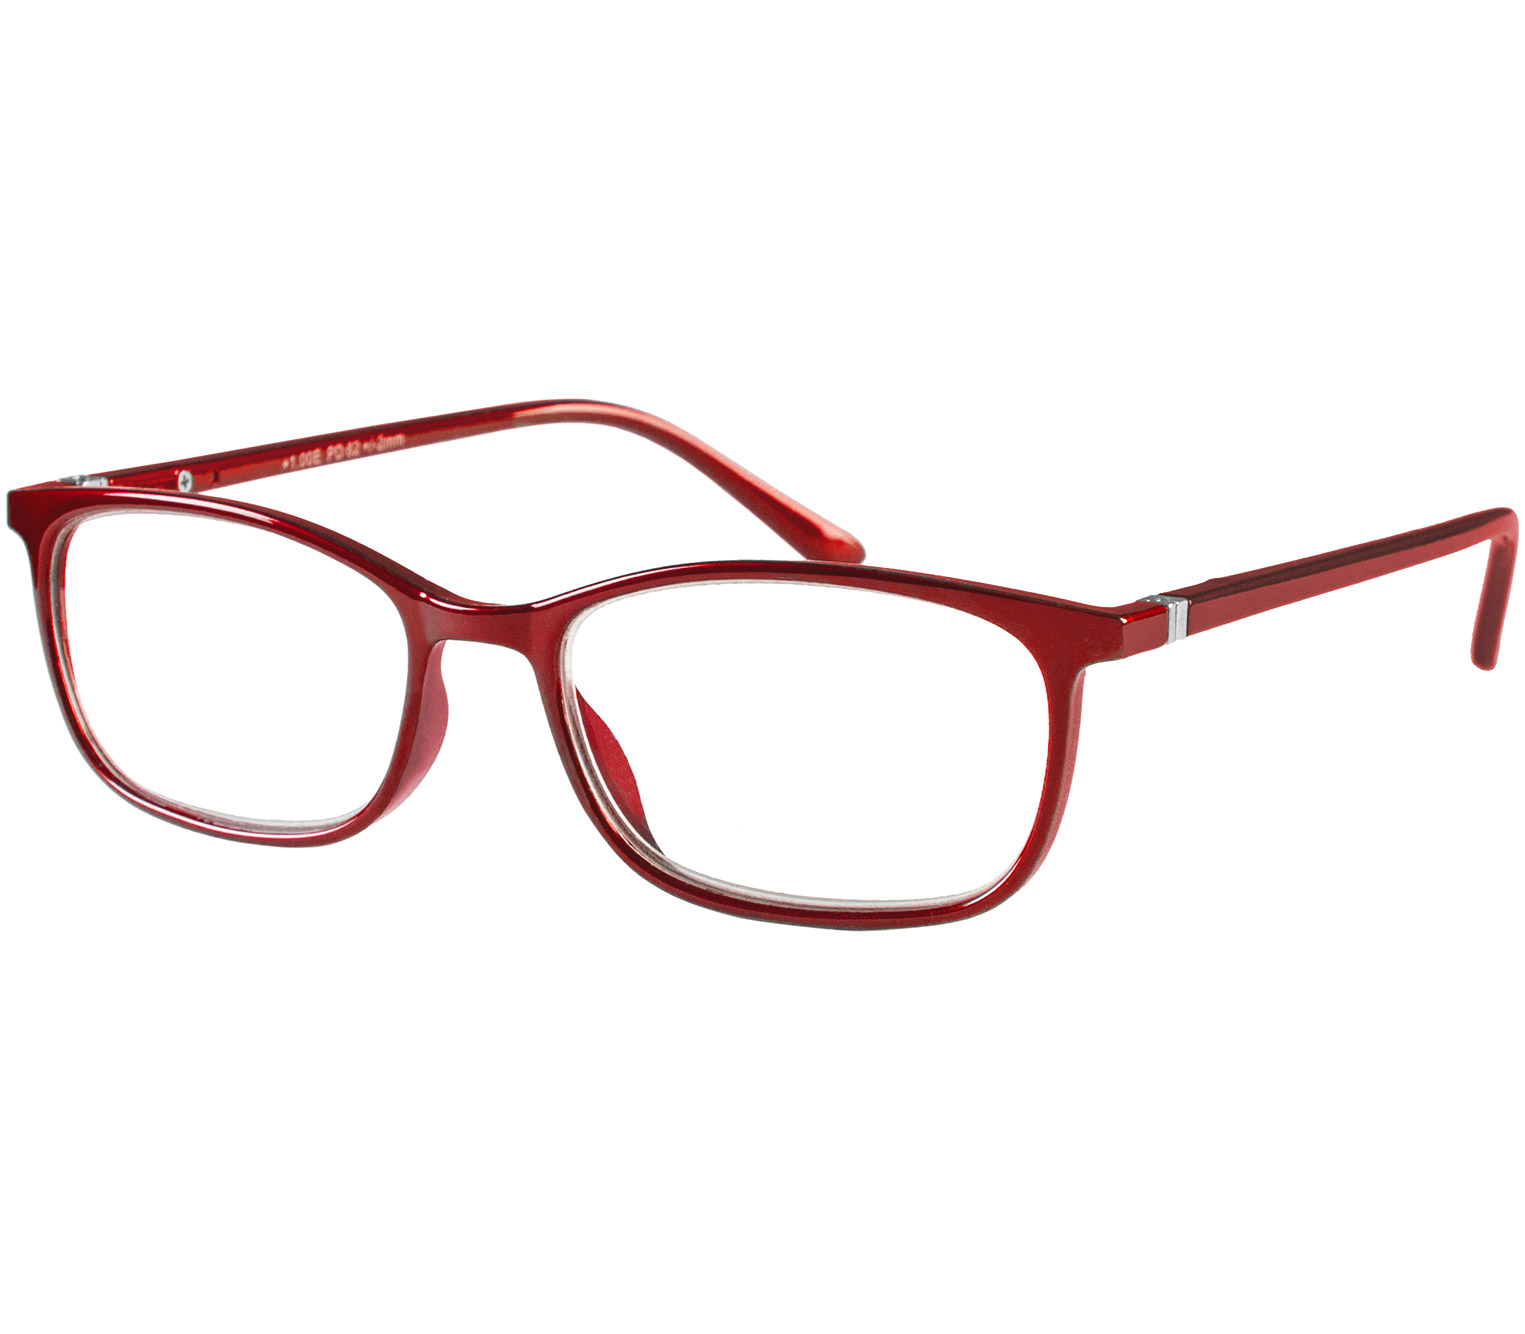 Main Image (Angle) - Martini (Red) Classic Reading Glasses